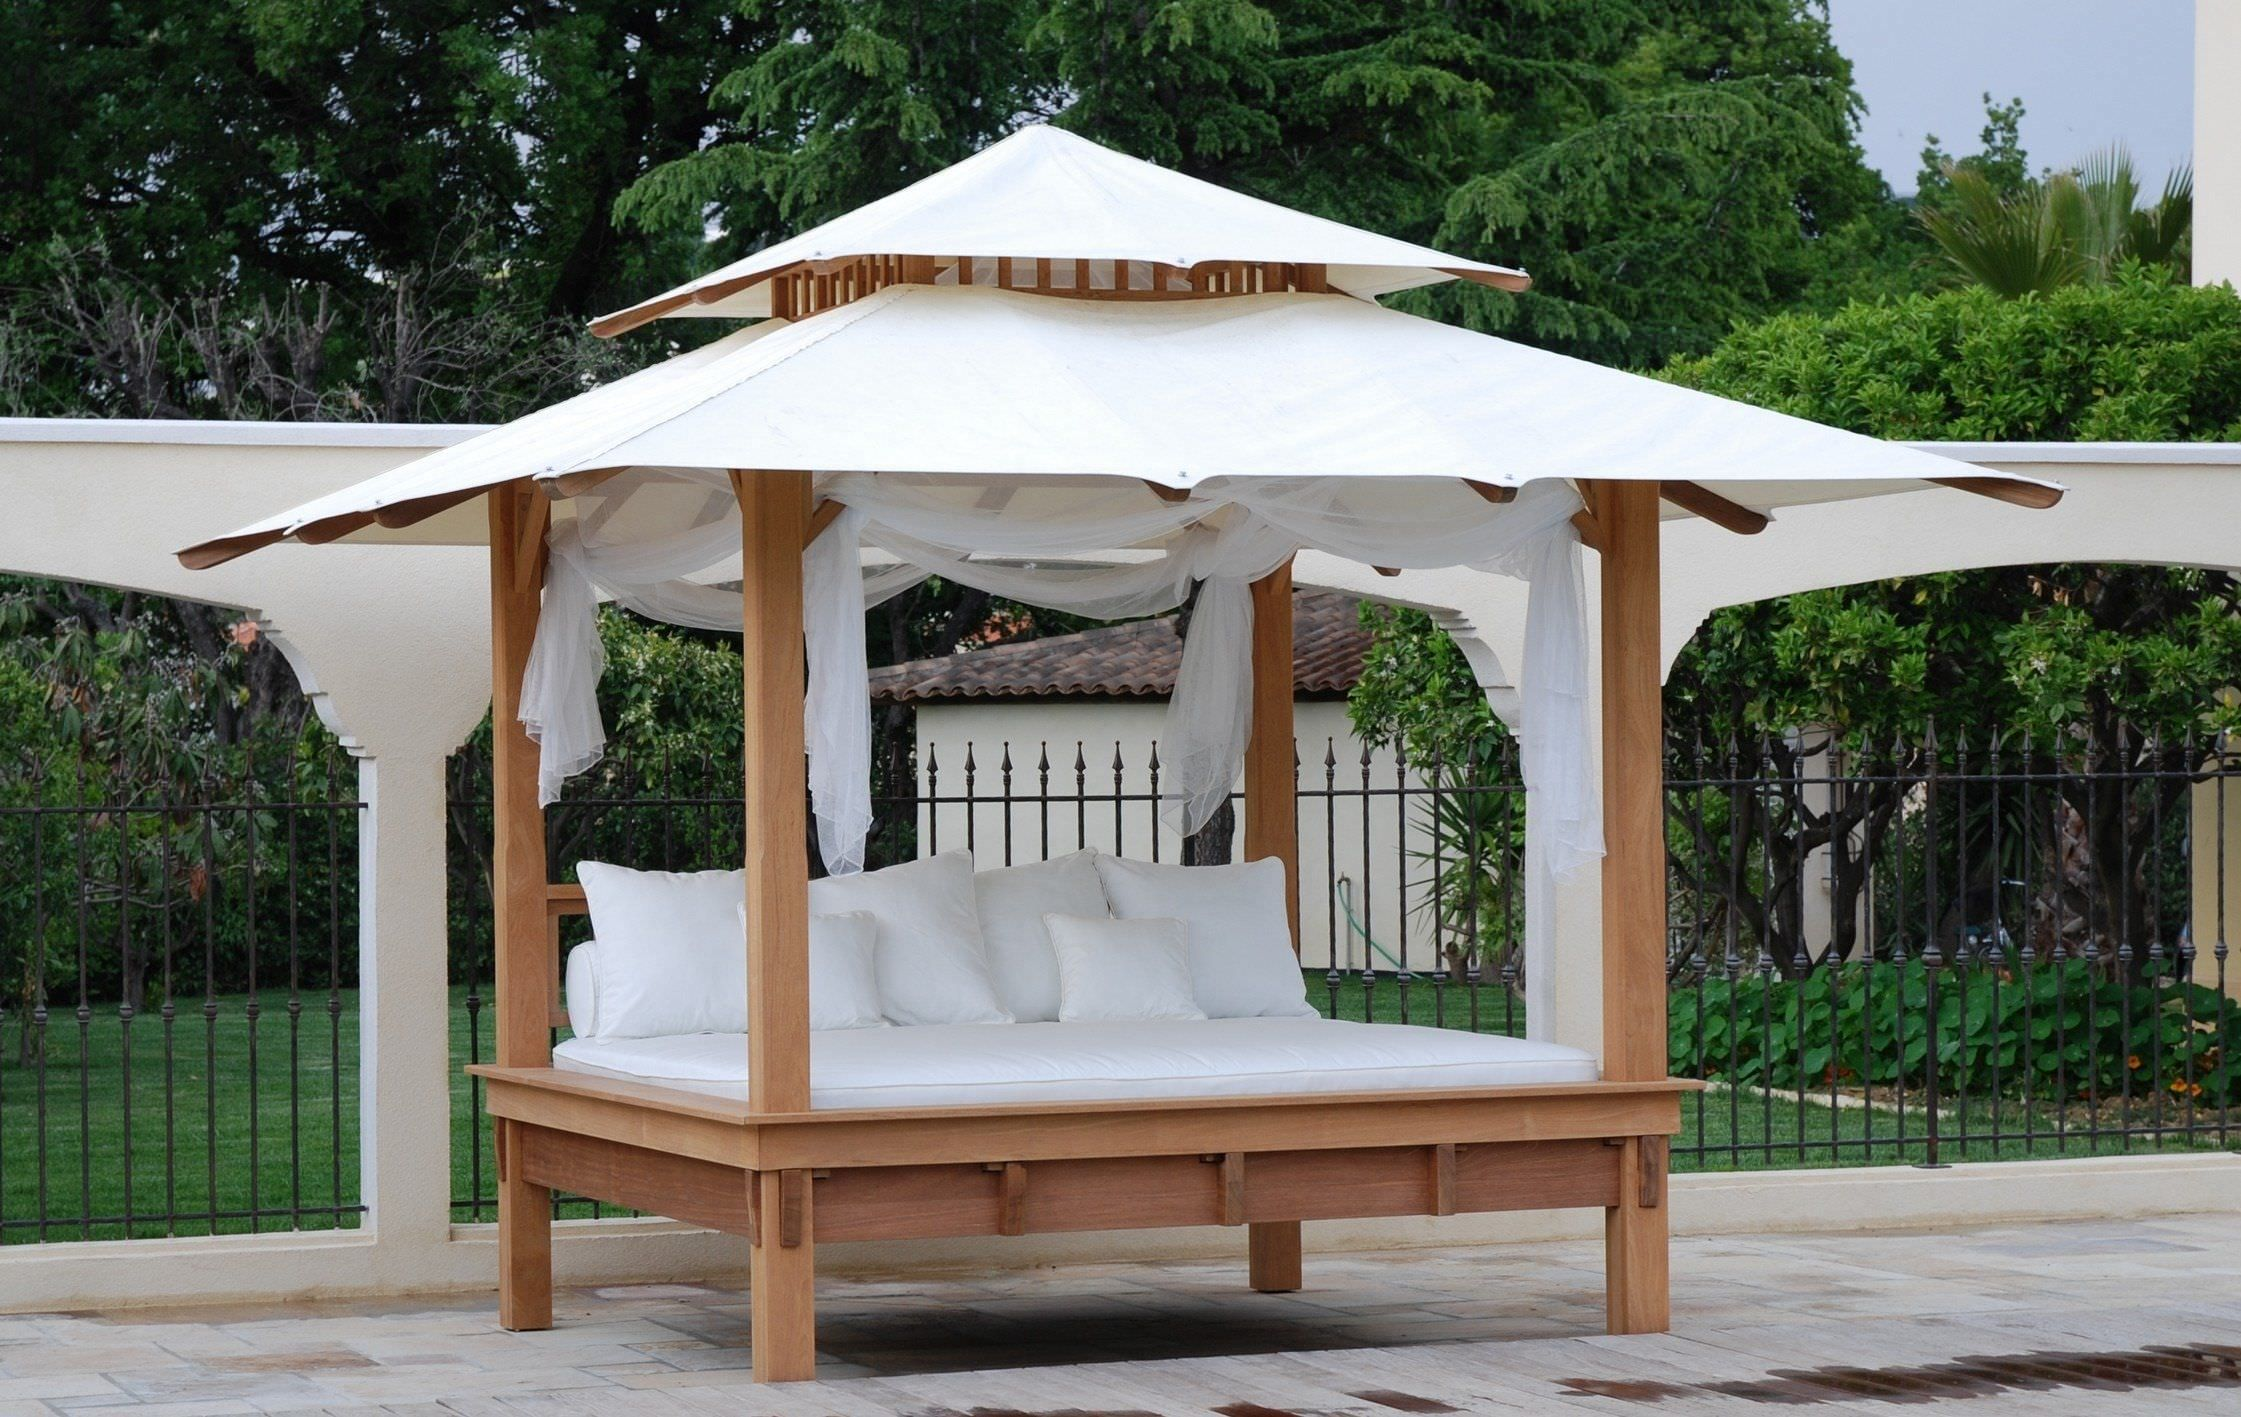 Furniture, Outdoor Furniture Captivating Outdoor Canopy Bed With Wooden Bed  Frame And White Canopy Also White Bedding And Cushions Awesome Outdoor Bed  ...